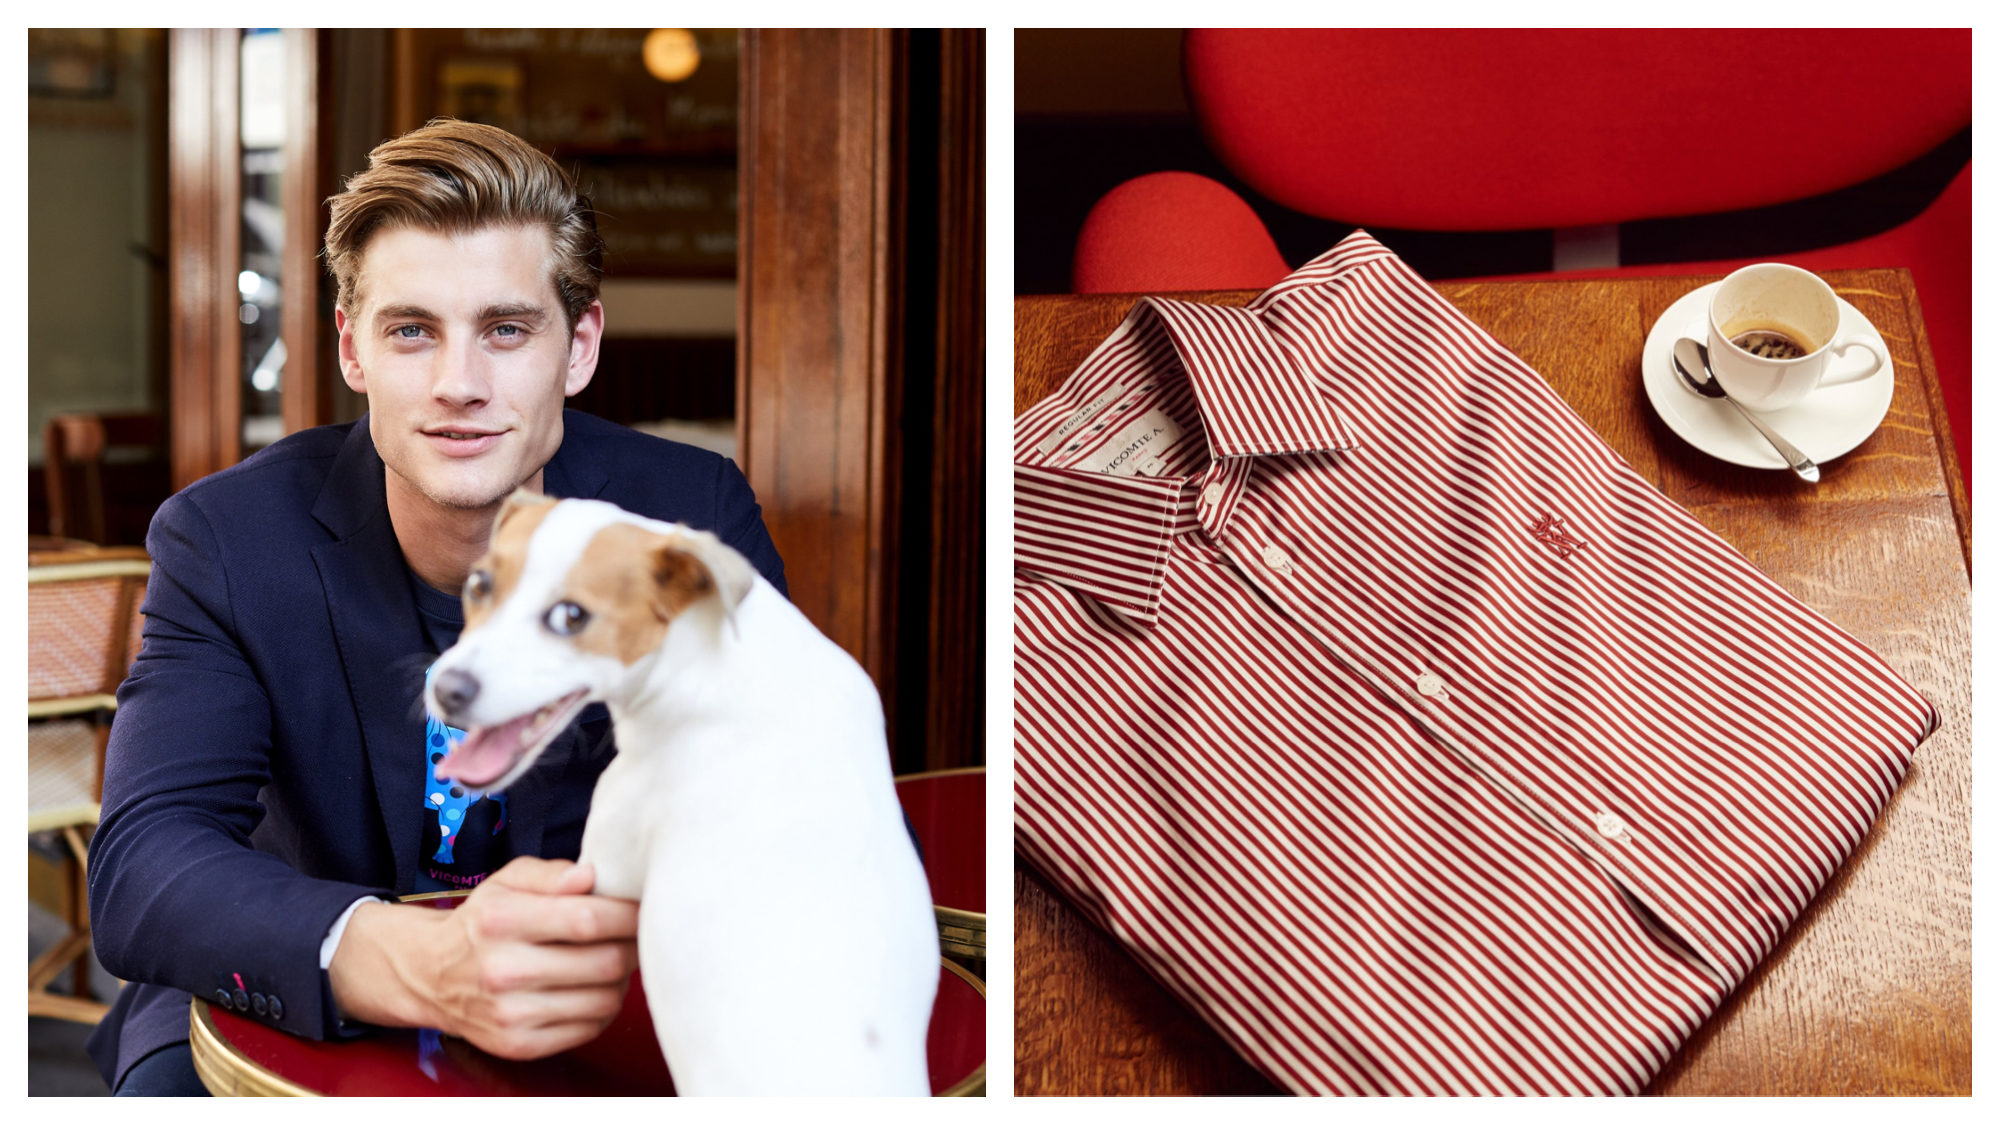 A male model at a Parisian café, wearing a navy sweater, with his dog (left) and a striped red and white shirt on a wooden desk next to an empty cup of coffee (right) from French menswear brand Vicomte A.